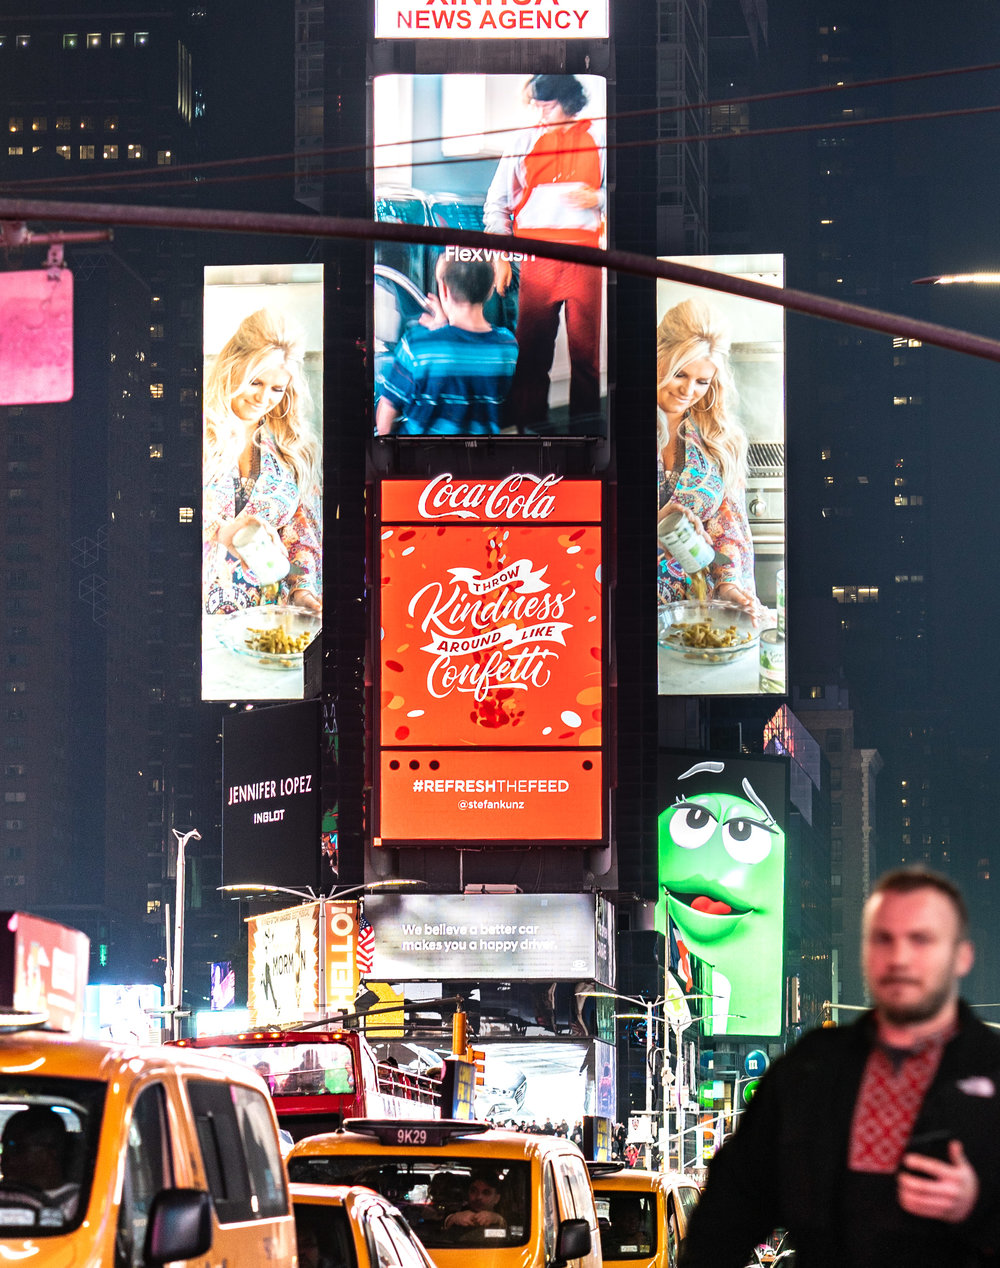 BILLBOARD - TIMES SQUARE